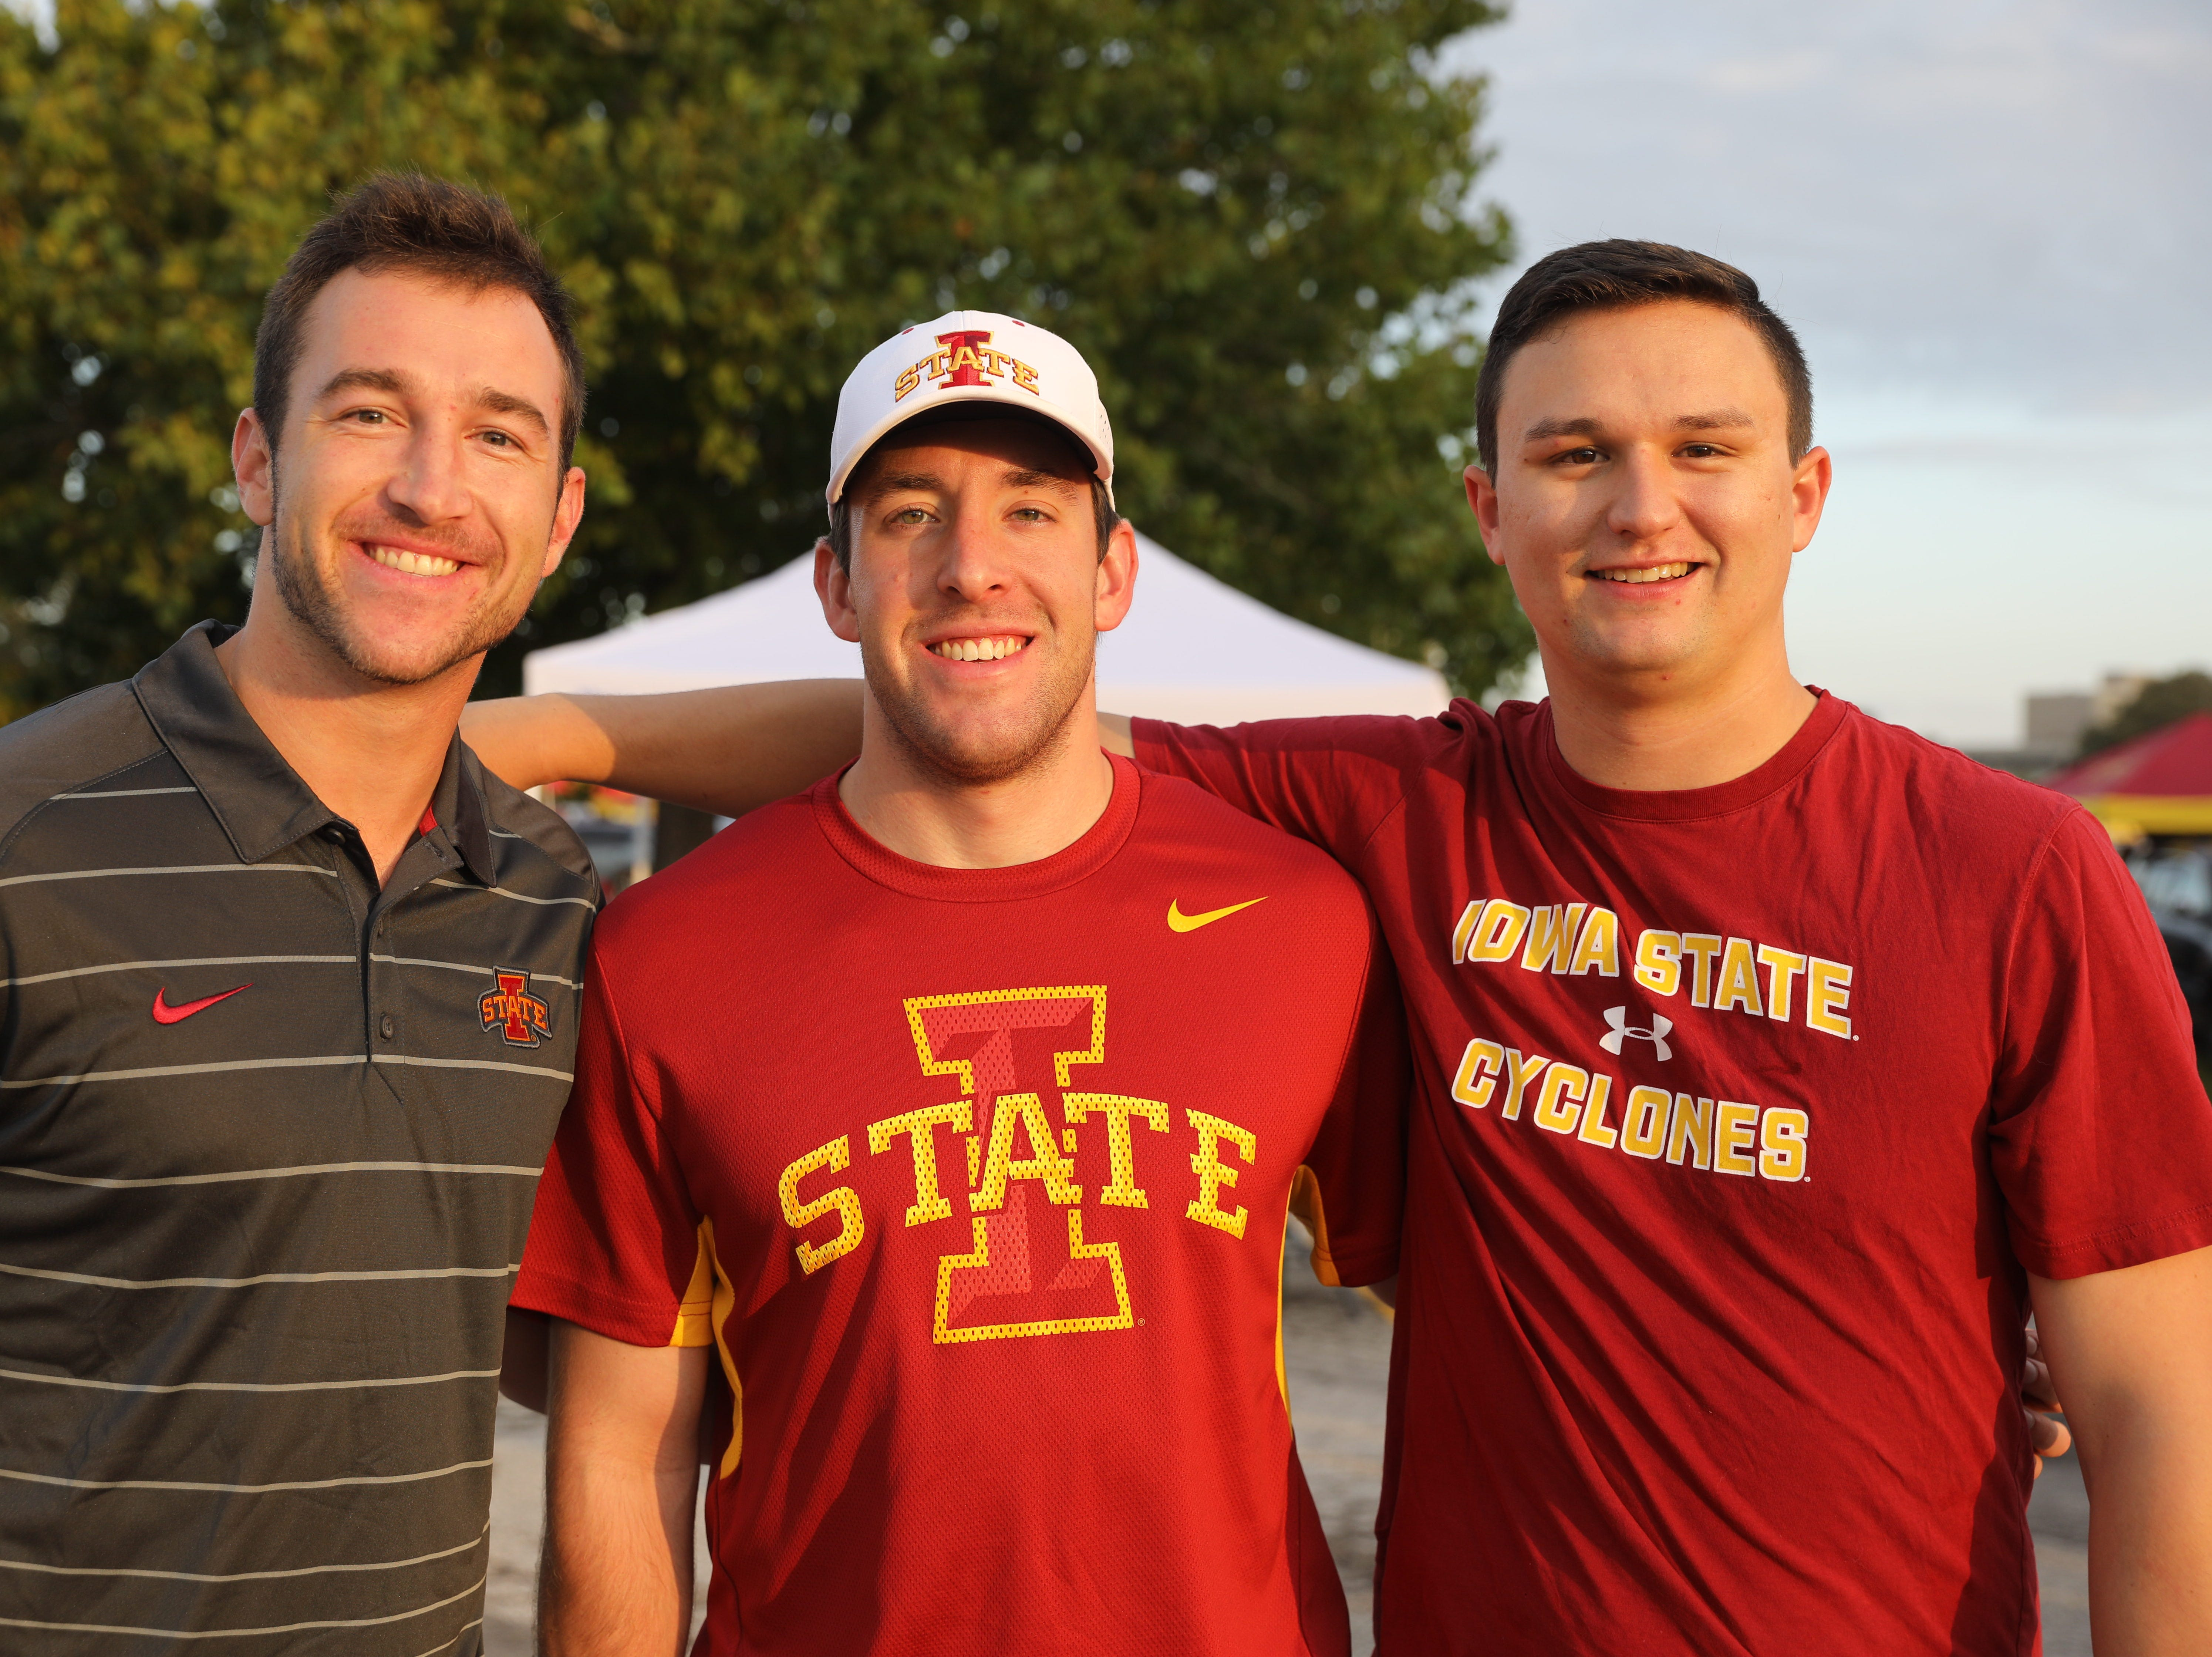 Josh Jahlas, 24, (from left) Tanner Tusha, 25, both of Des Moines, and Zach Johnson, 24, of Minneapolis, Saturday, Sept. 15, 2018, before the Iowa State football game against Oklahoma in Ames.